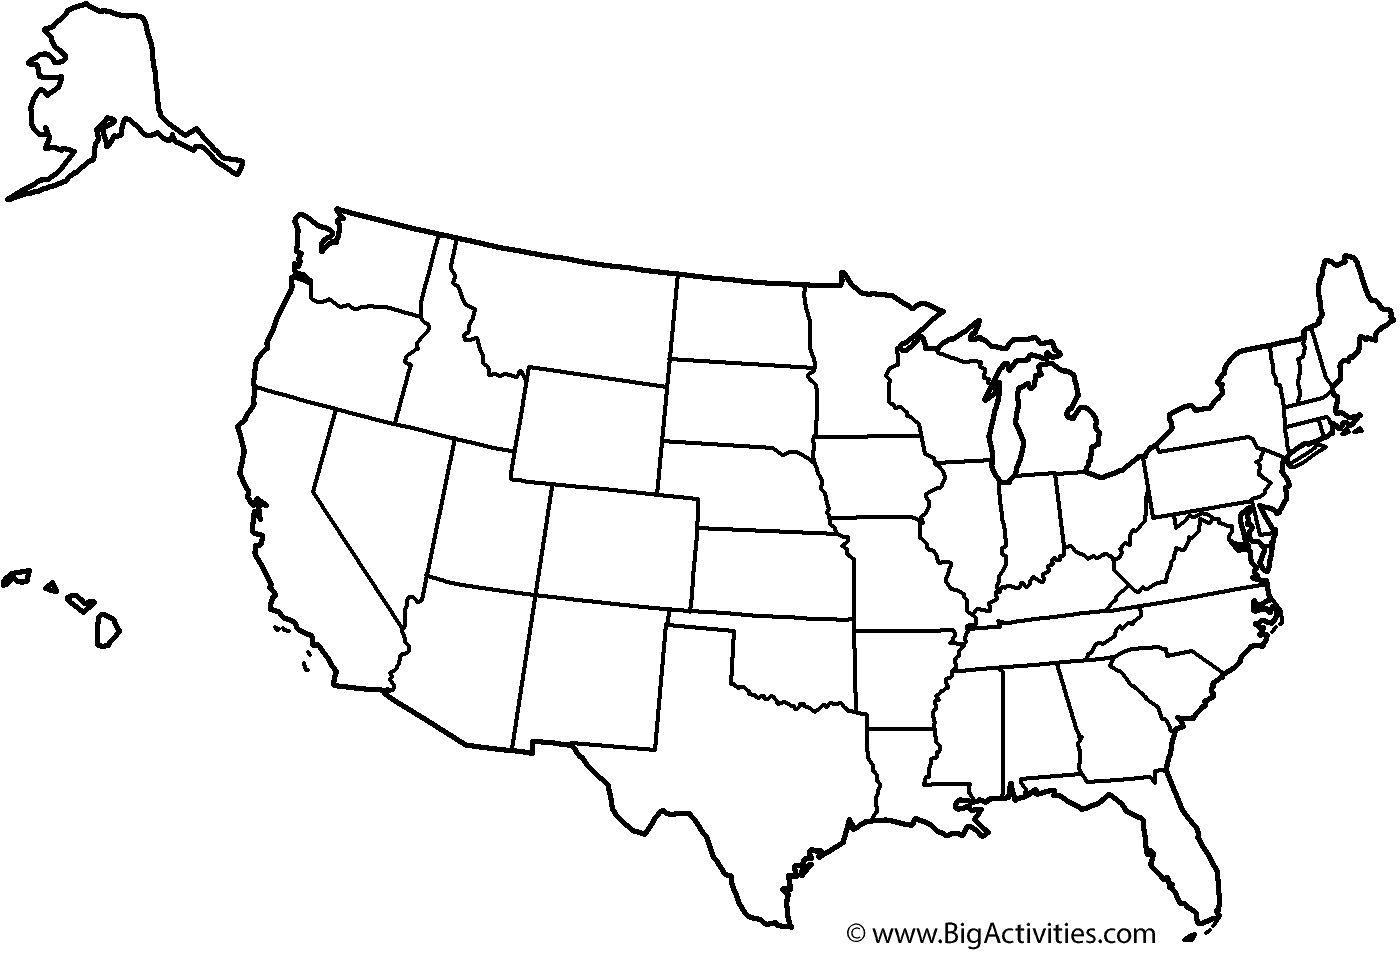 united states coloring page us map coloring pages best coloring pages for kids coloring united page states